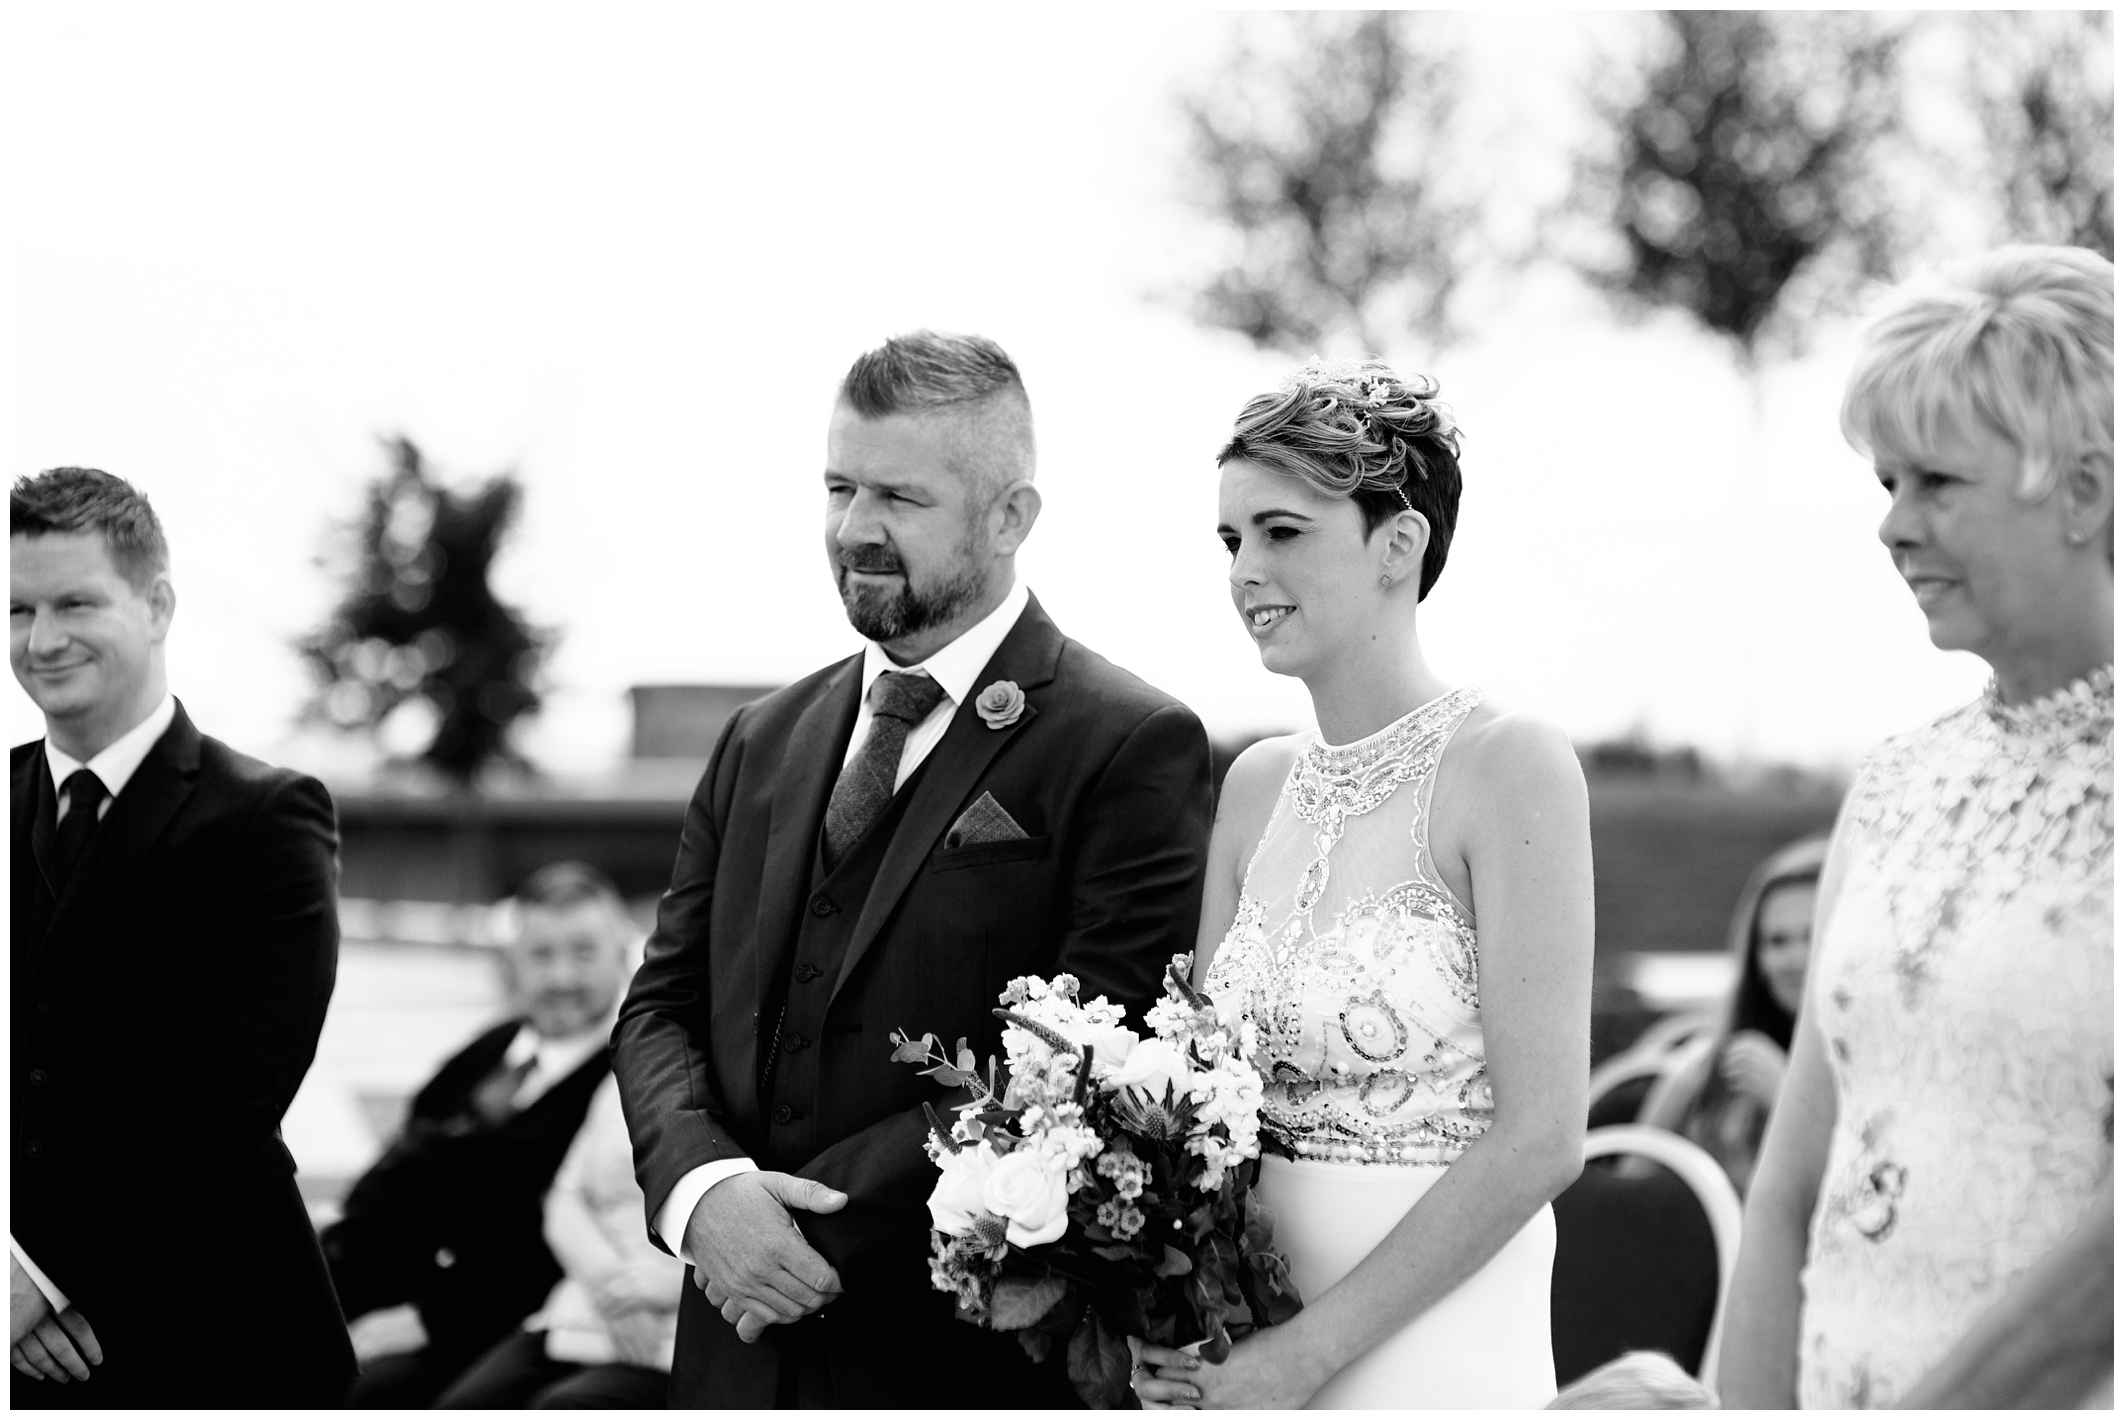 christina_stephen_hill_of_the_oneill_dungannon_wedding_jude_browne_photography_0018.jpg